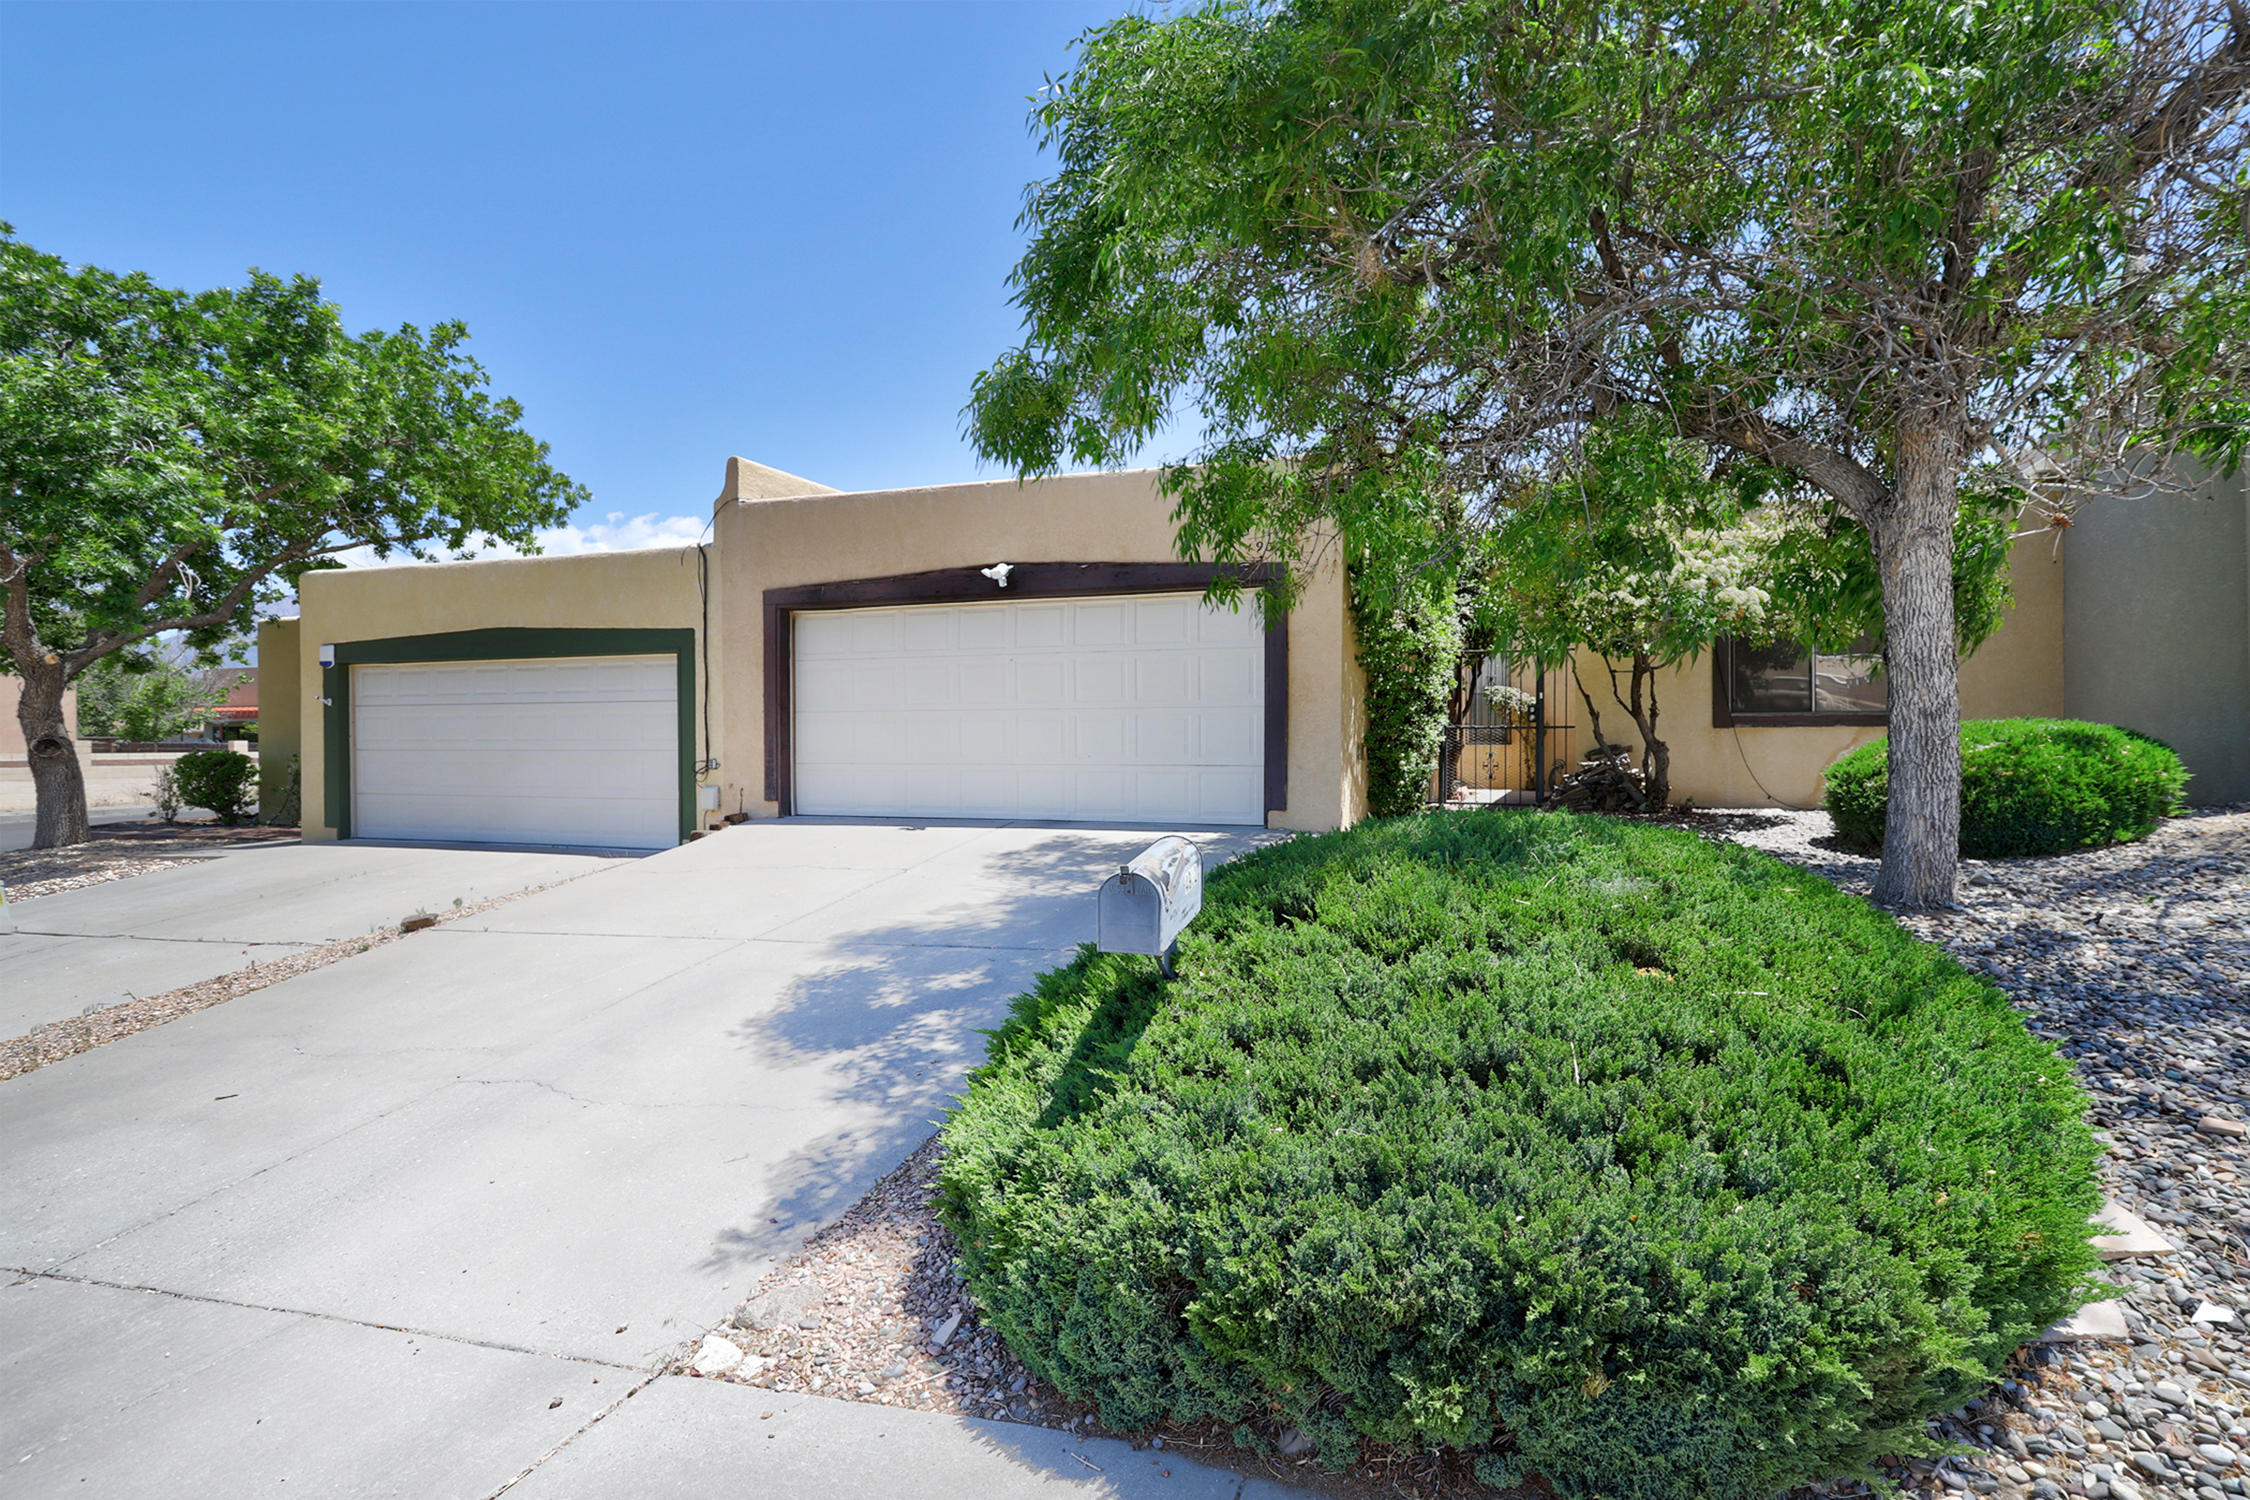 Home is Tenant occupied with 4 1/2 years remaining on lease. Wonderful tenants and a great investment opportunity.